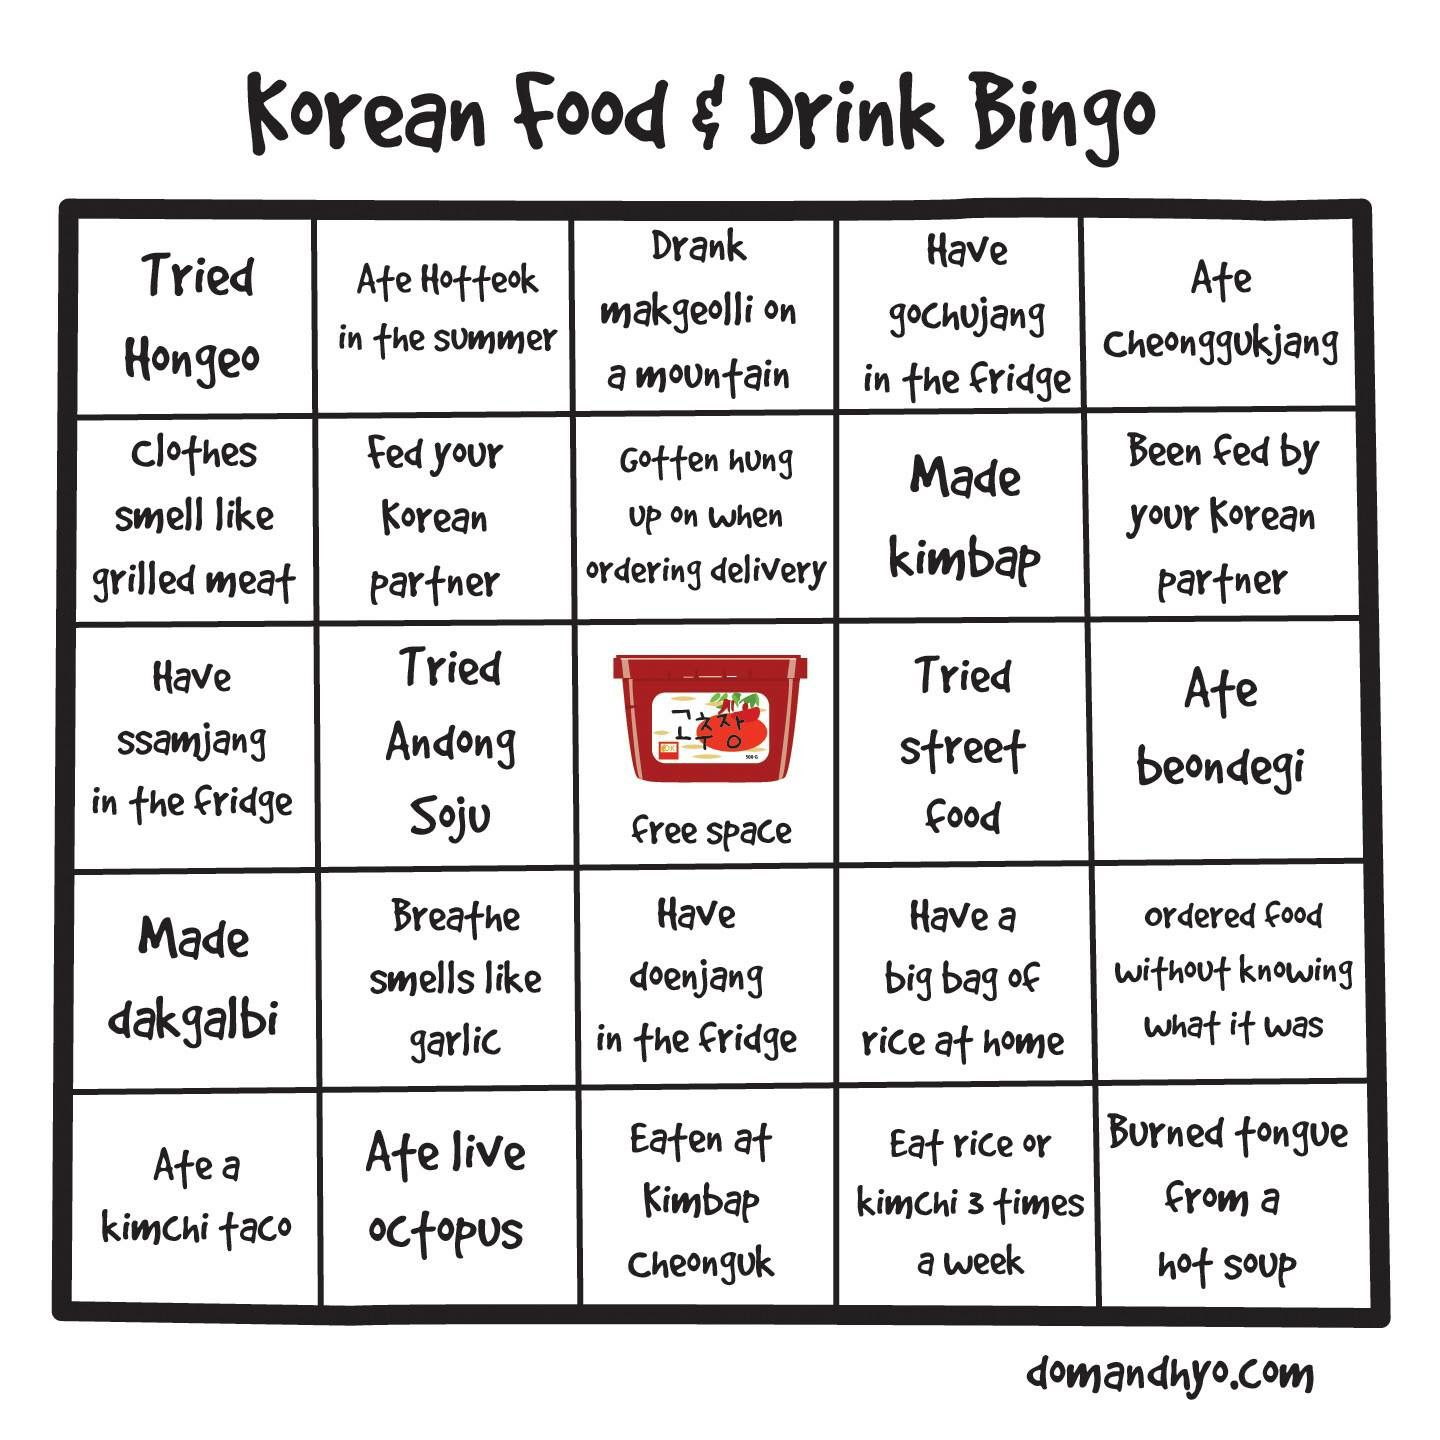 Korean Food & Drink Bingo